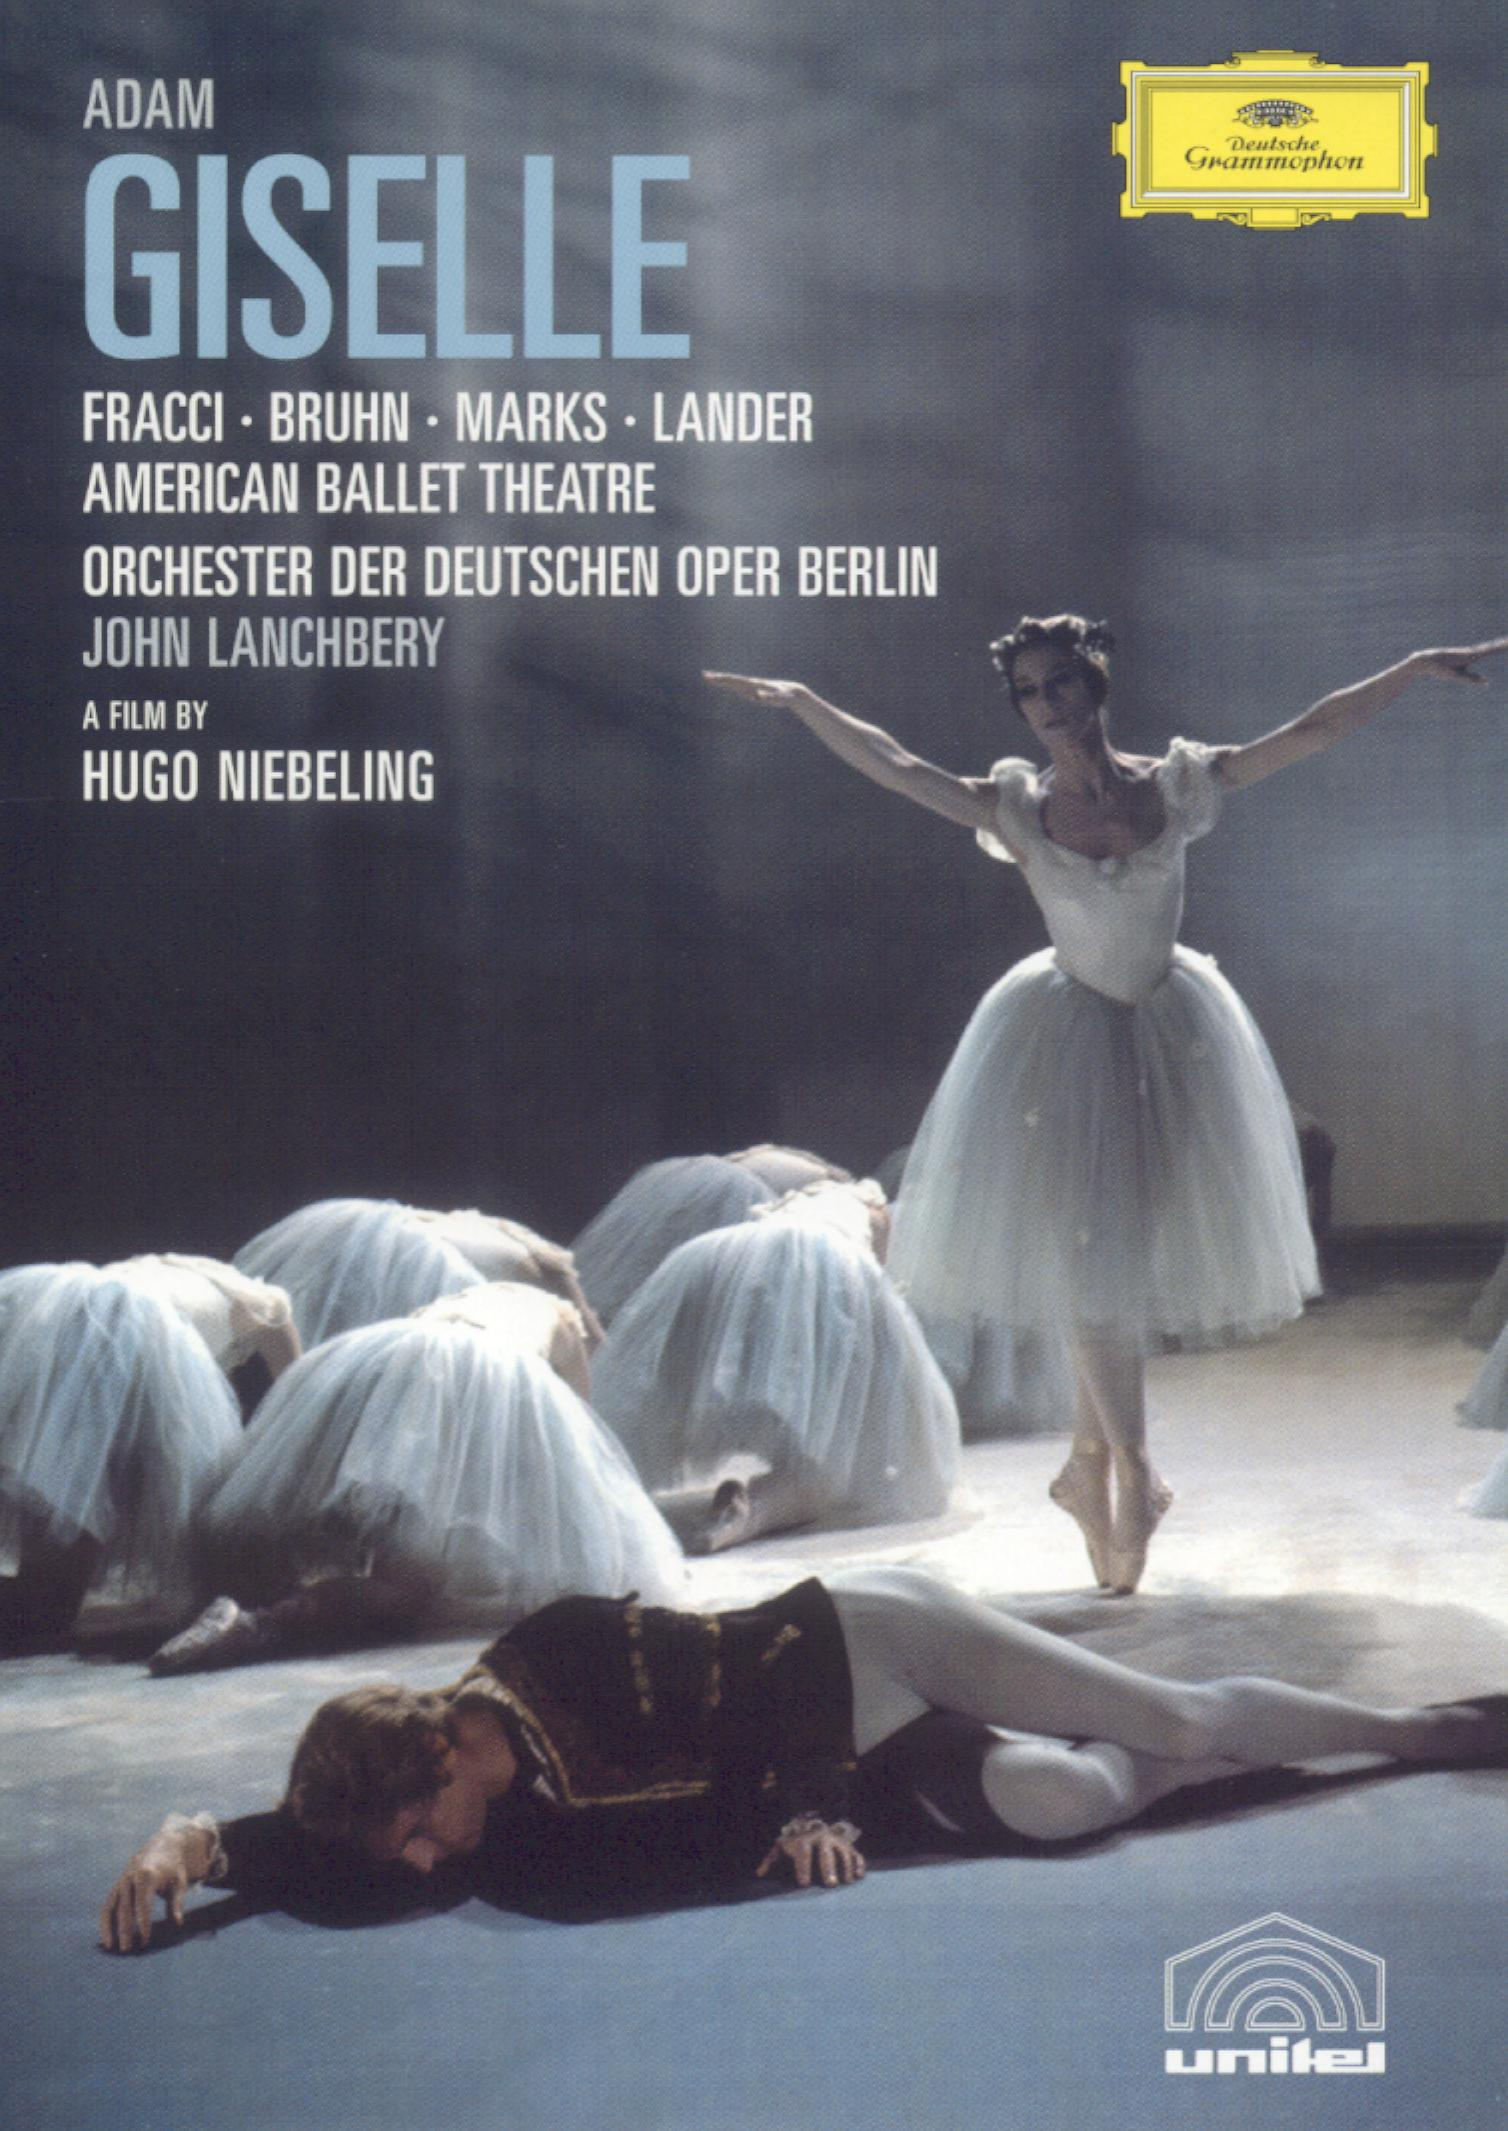 Giselle (American Ballet Theatre)